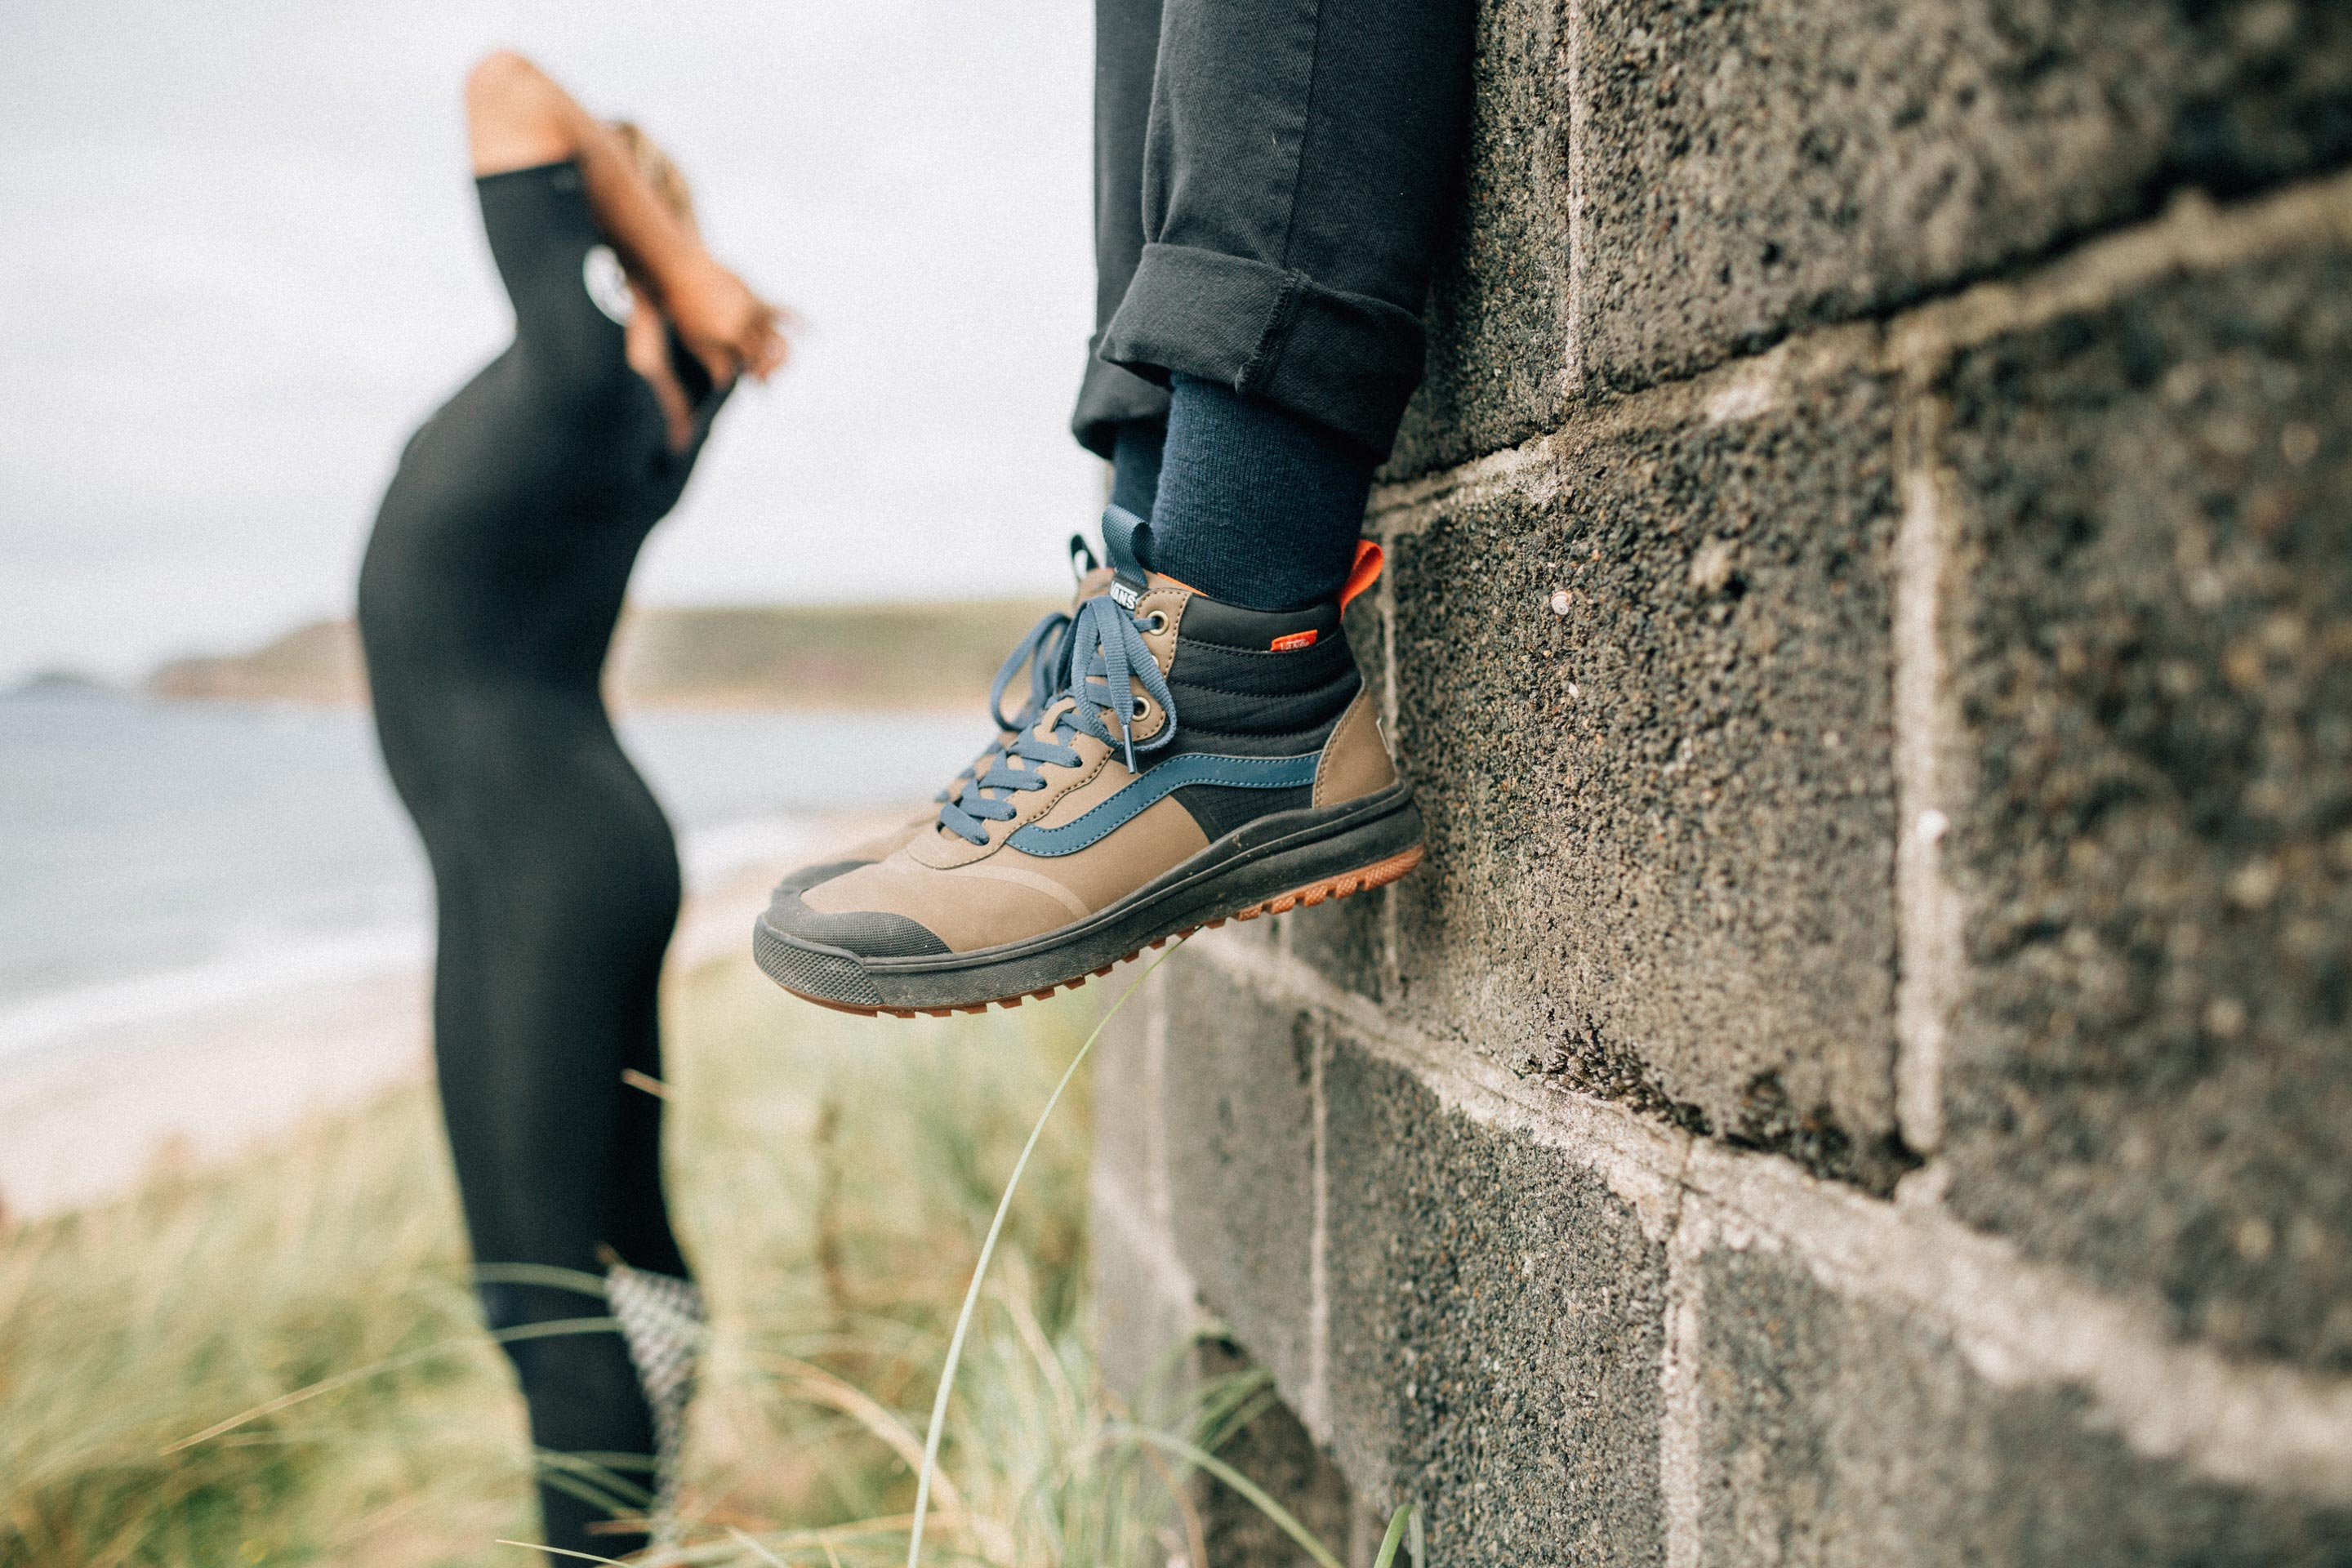 Vans + Finisterre editorial -  Seb Smart gets suited up while Paige Maddisons legs dnagle from the wall, wearing the new vans + Finisterre ultrarange hi dl lightweight walking boots